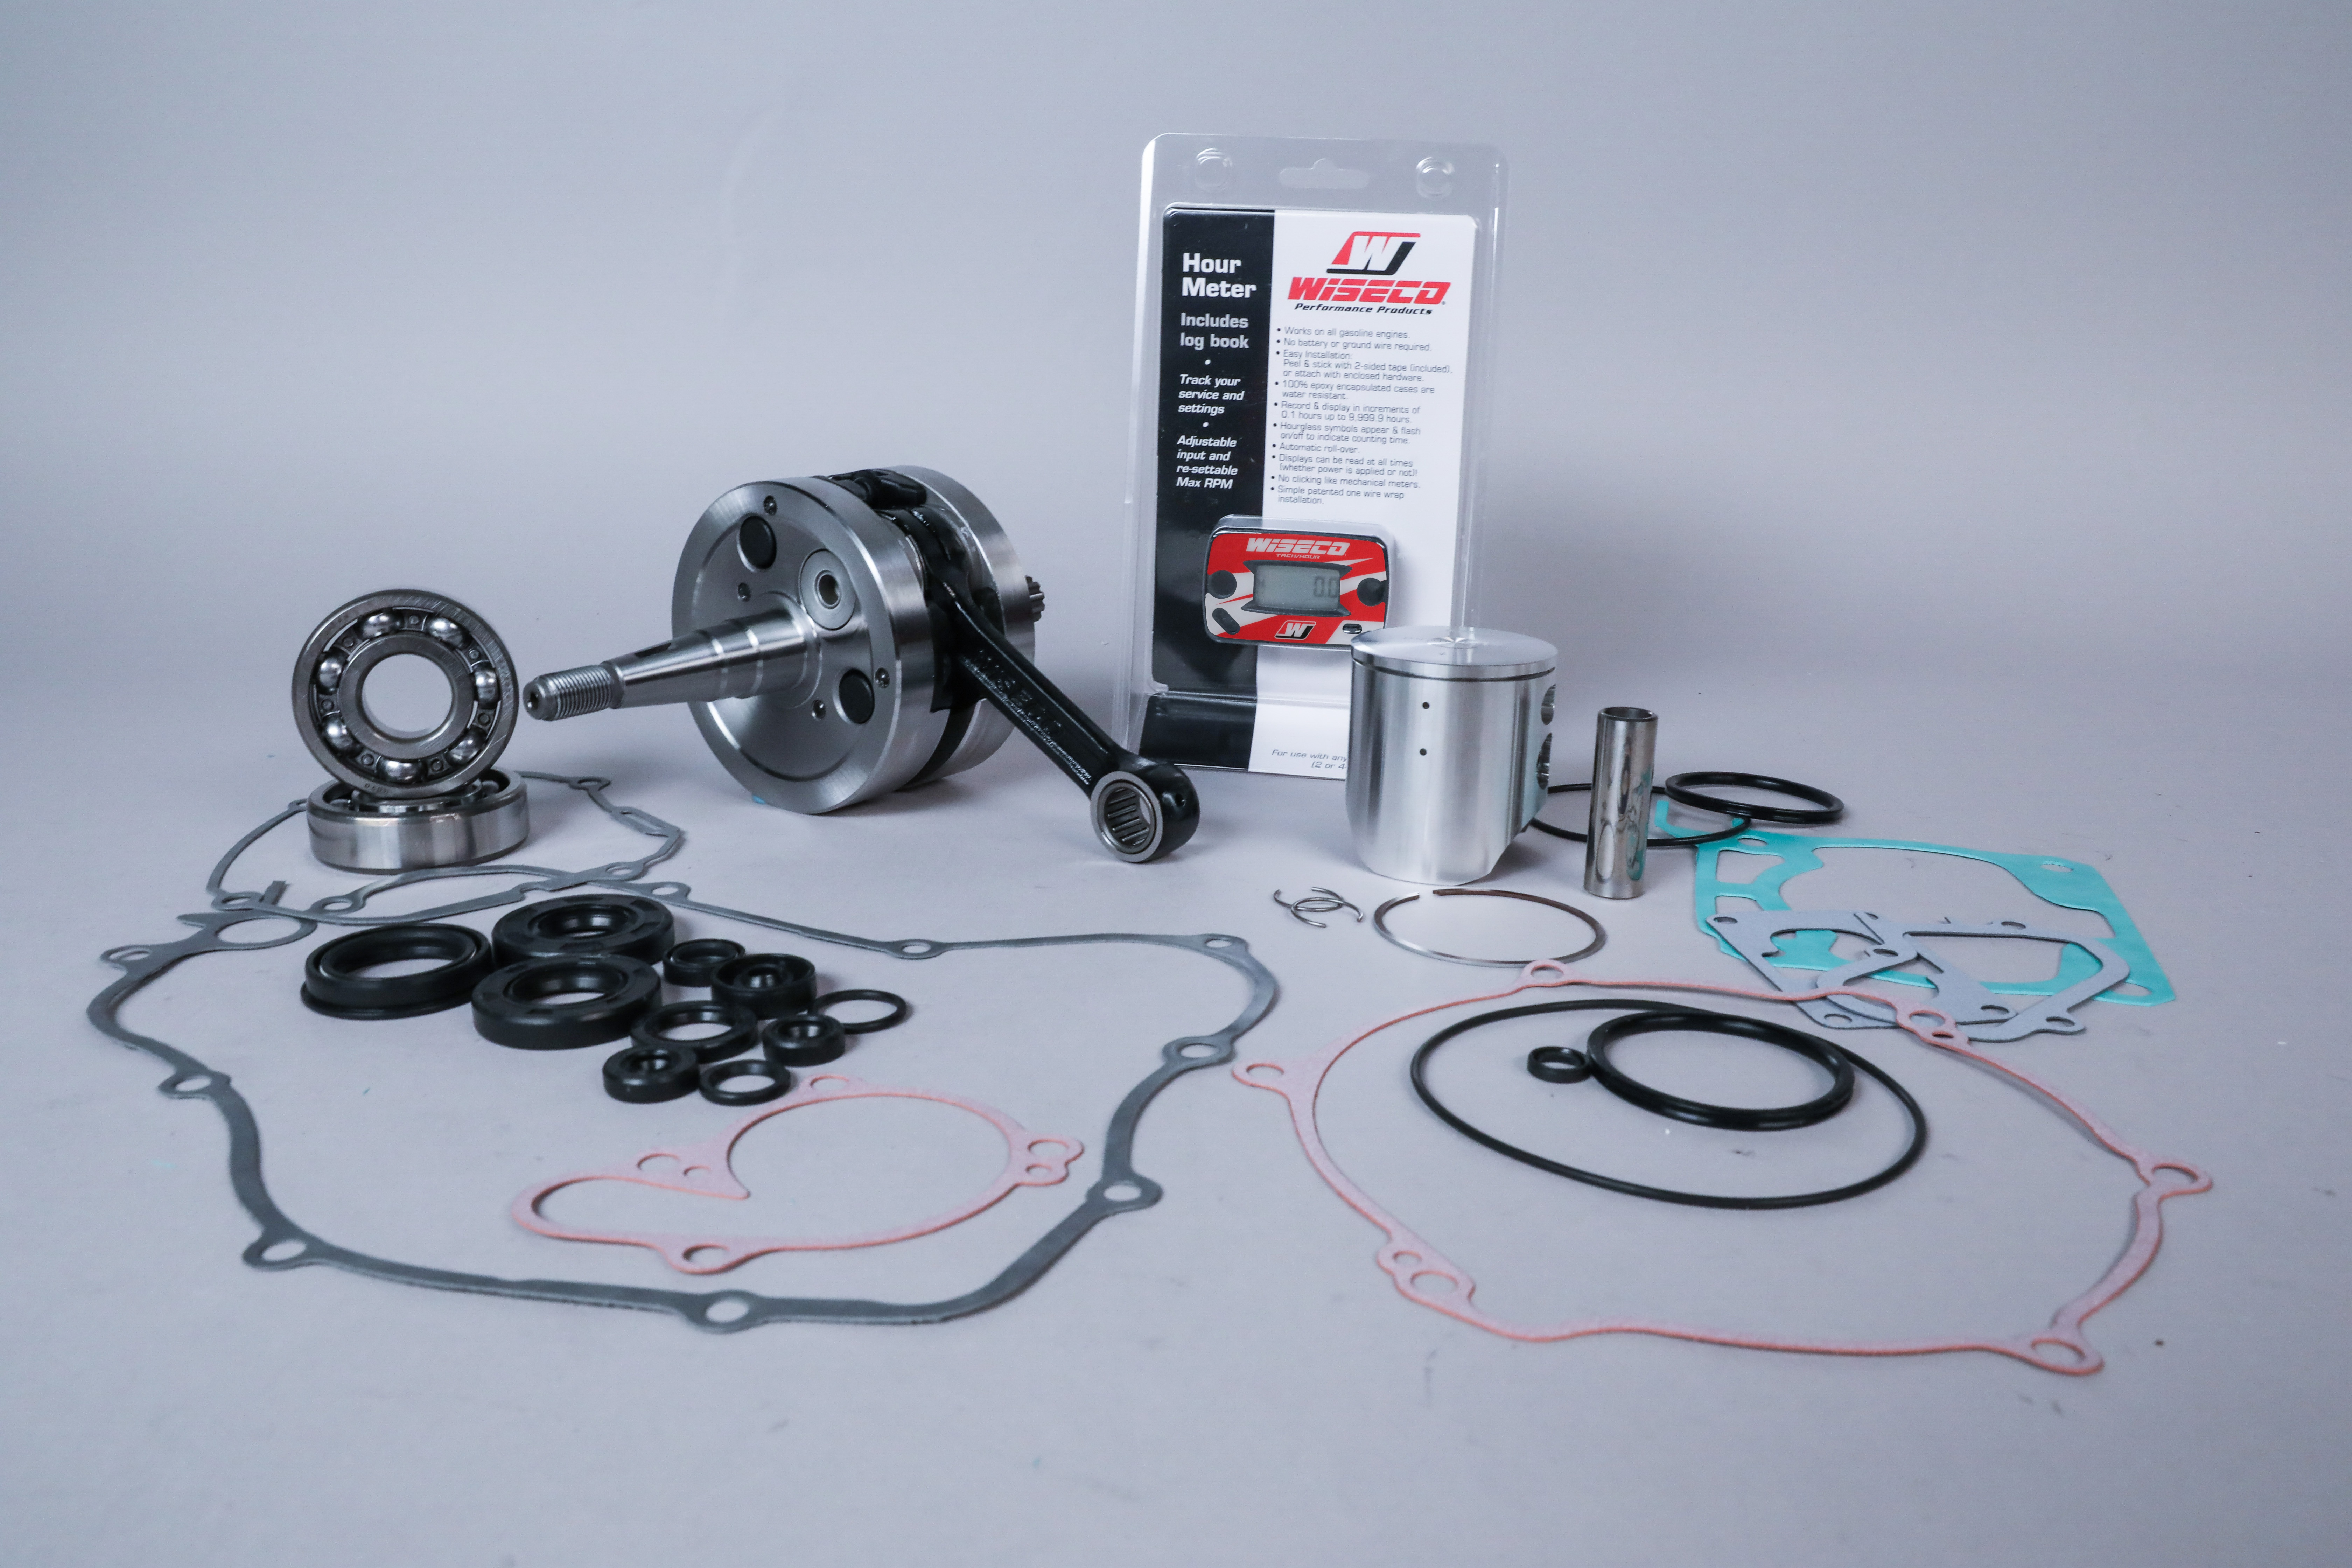 Wiseco's Garage Buddy Complete Engine Rebuild Kits for Dirt